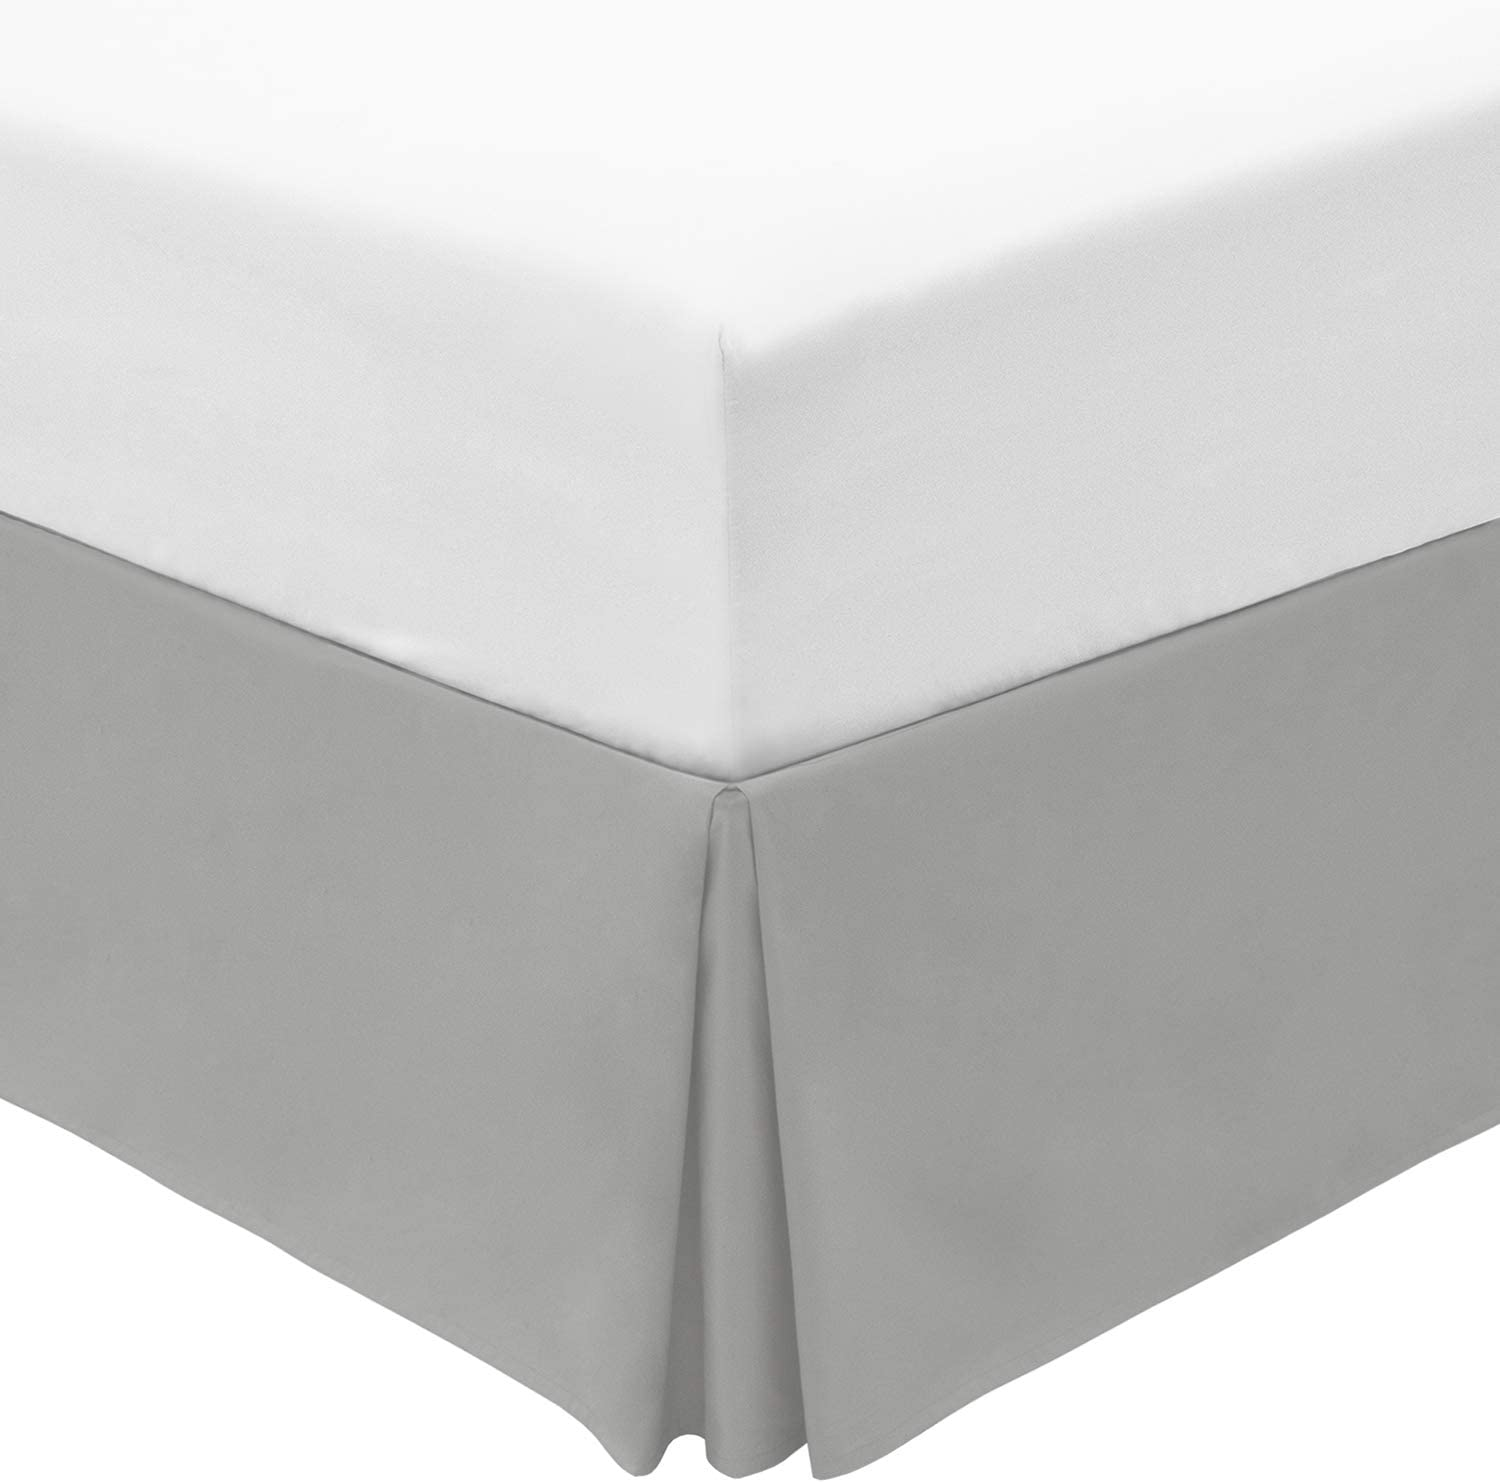 Mellanni Bed Skirt King Size - Bed Frame and Box Spring Cover - 15-Inch Tailored Drop Pleated Dust Ruffle - Luxury Bedding - Easy Fit, Wrinkle, Fade, Stain Resistant - 1 Bedskirt (King, Light Gray)